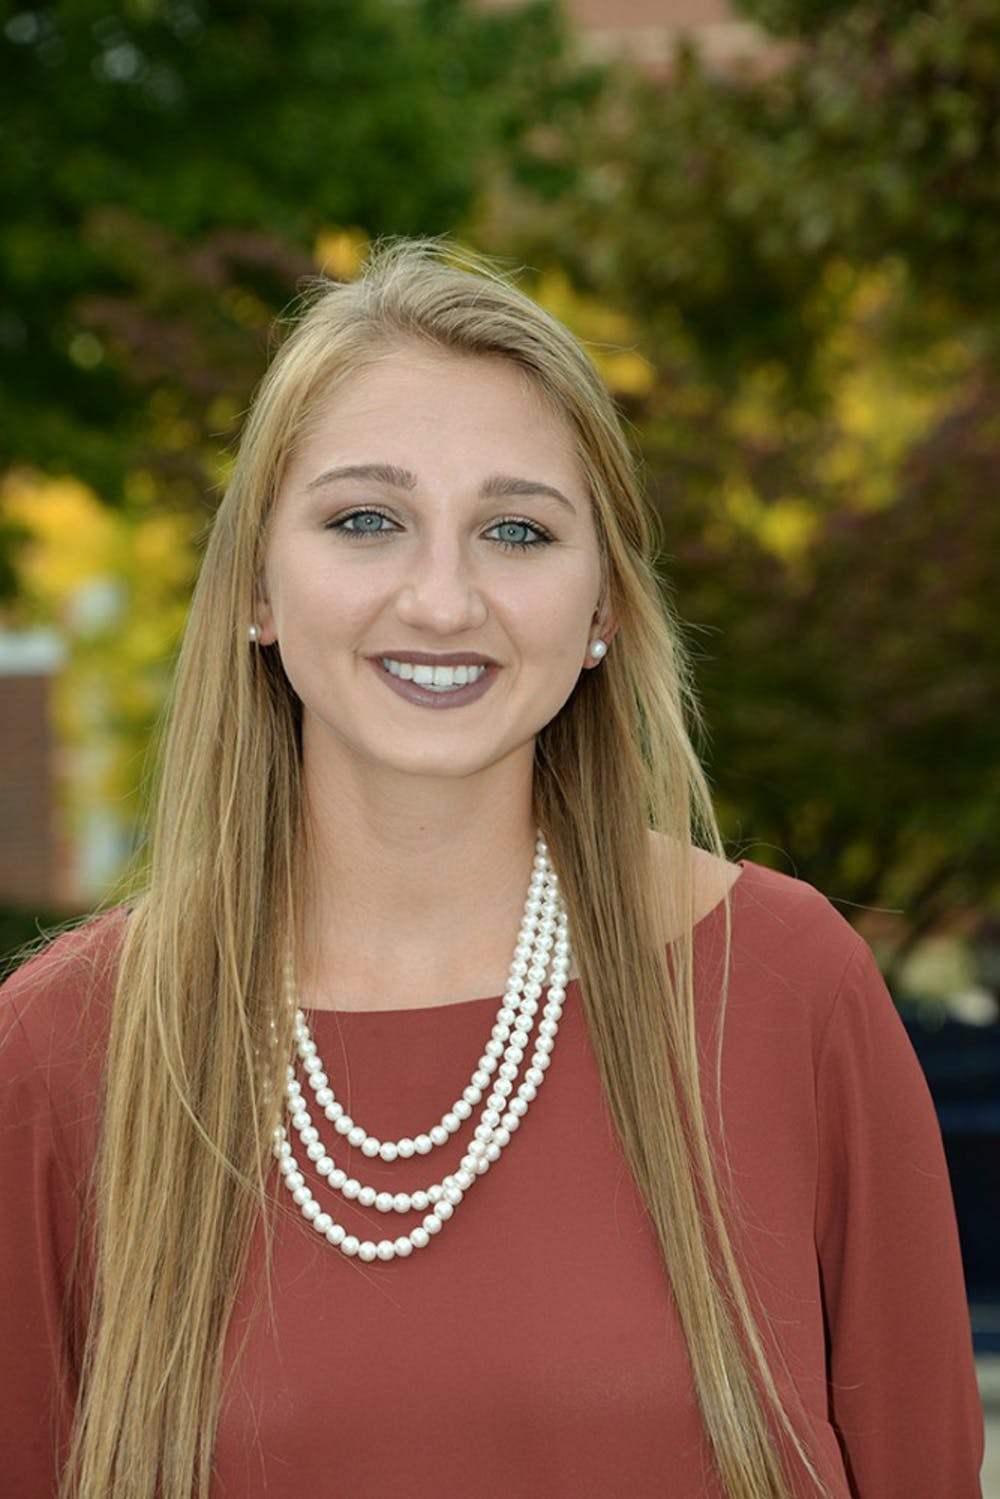 Student-athlete becomes executive board president